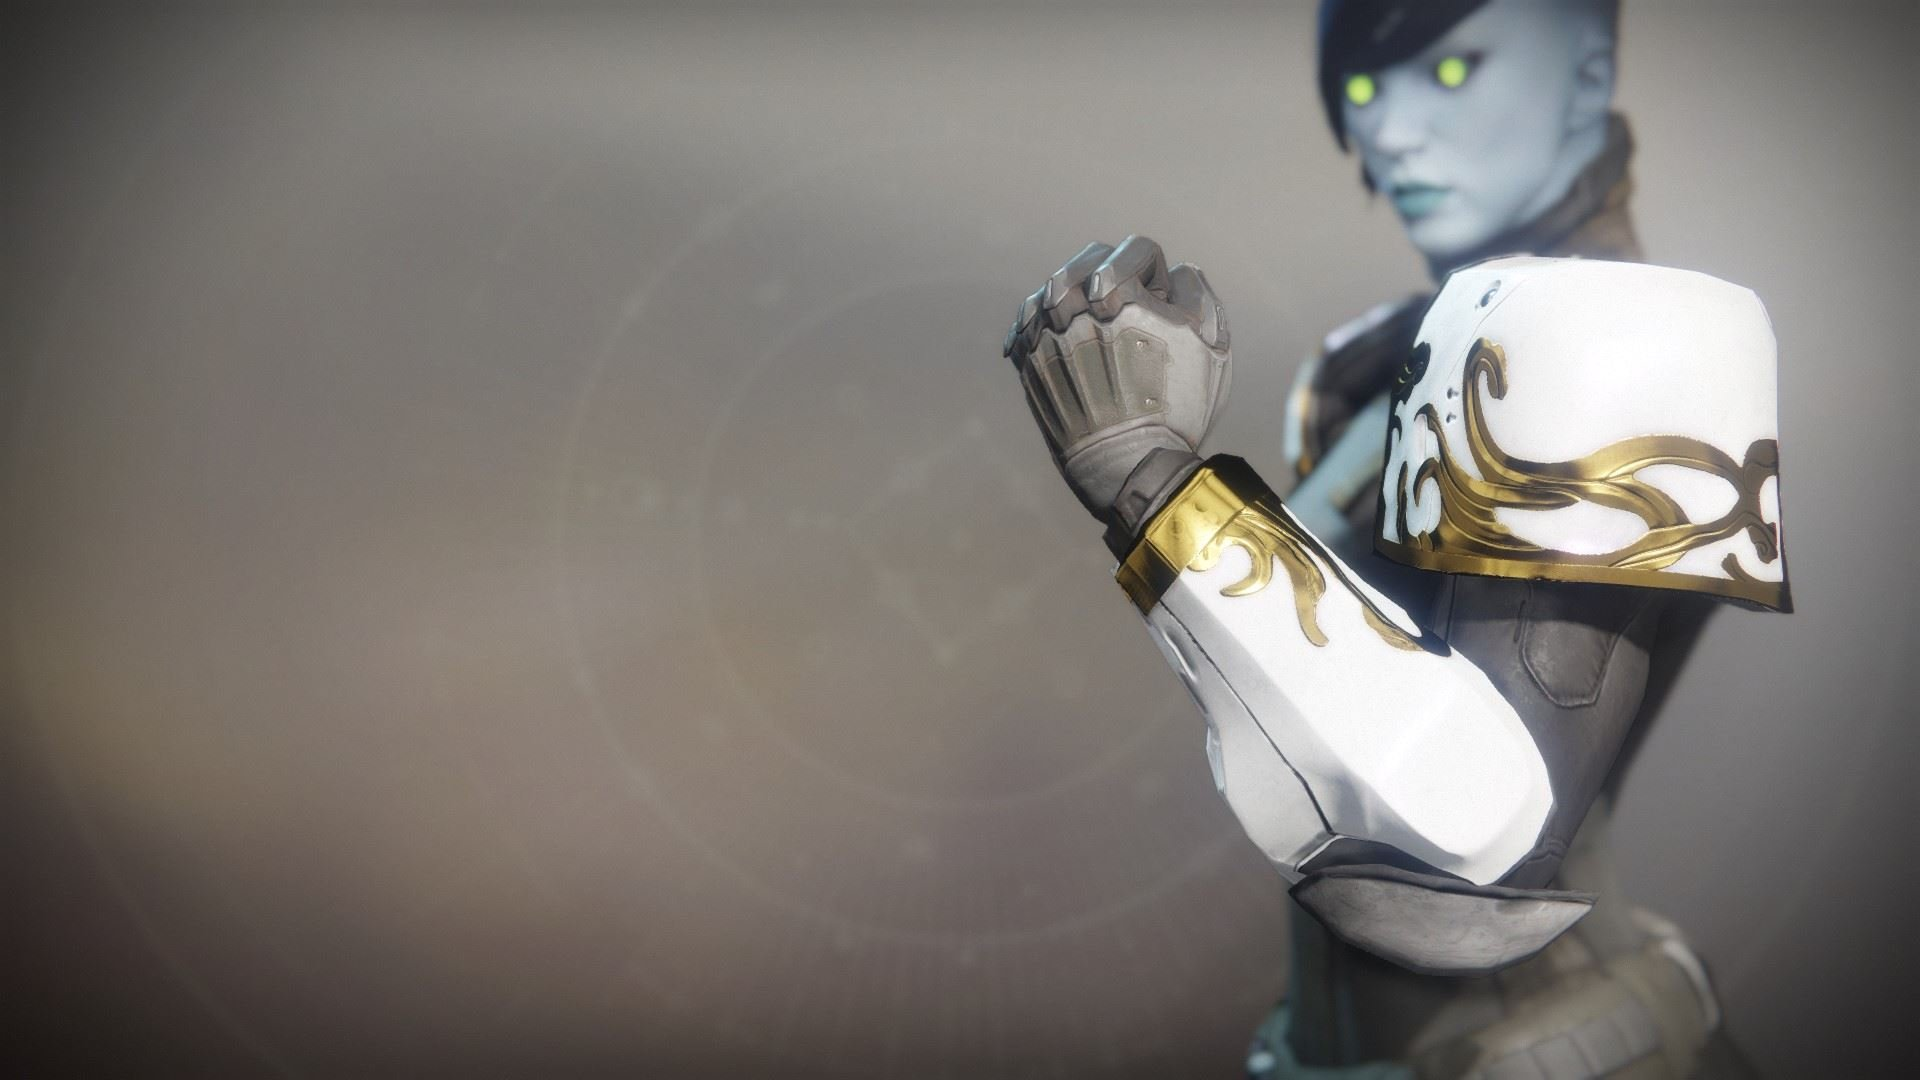 An in-game render of the Solstice Gauntlets (Resplendent).